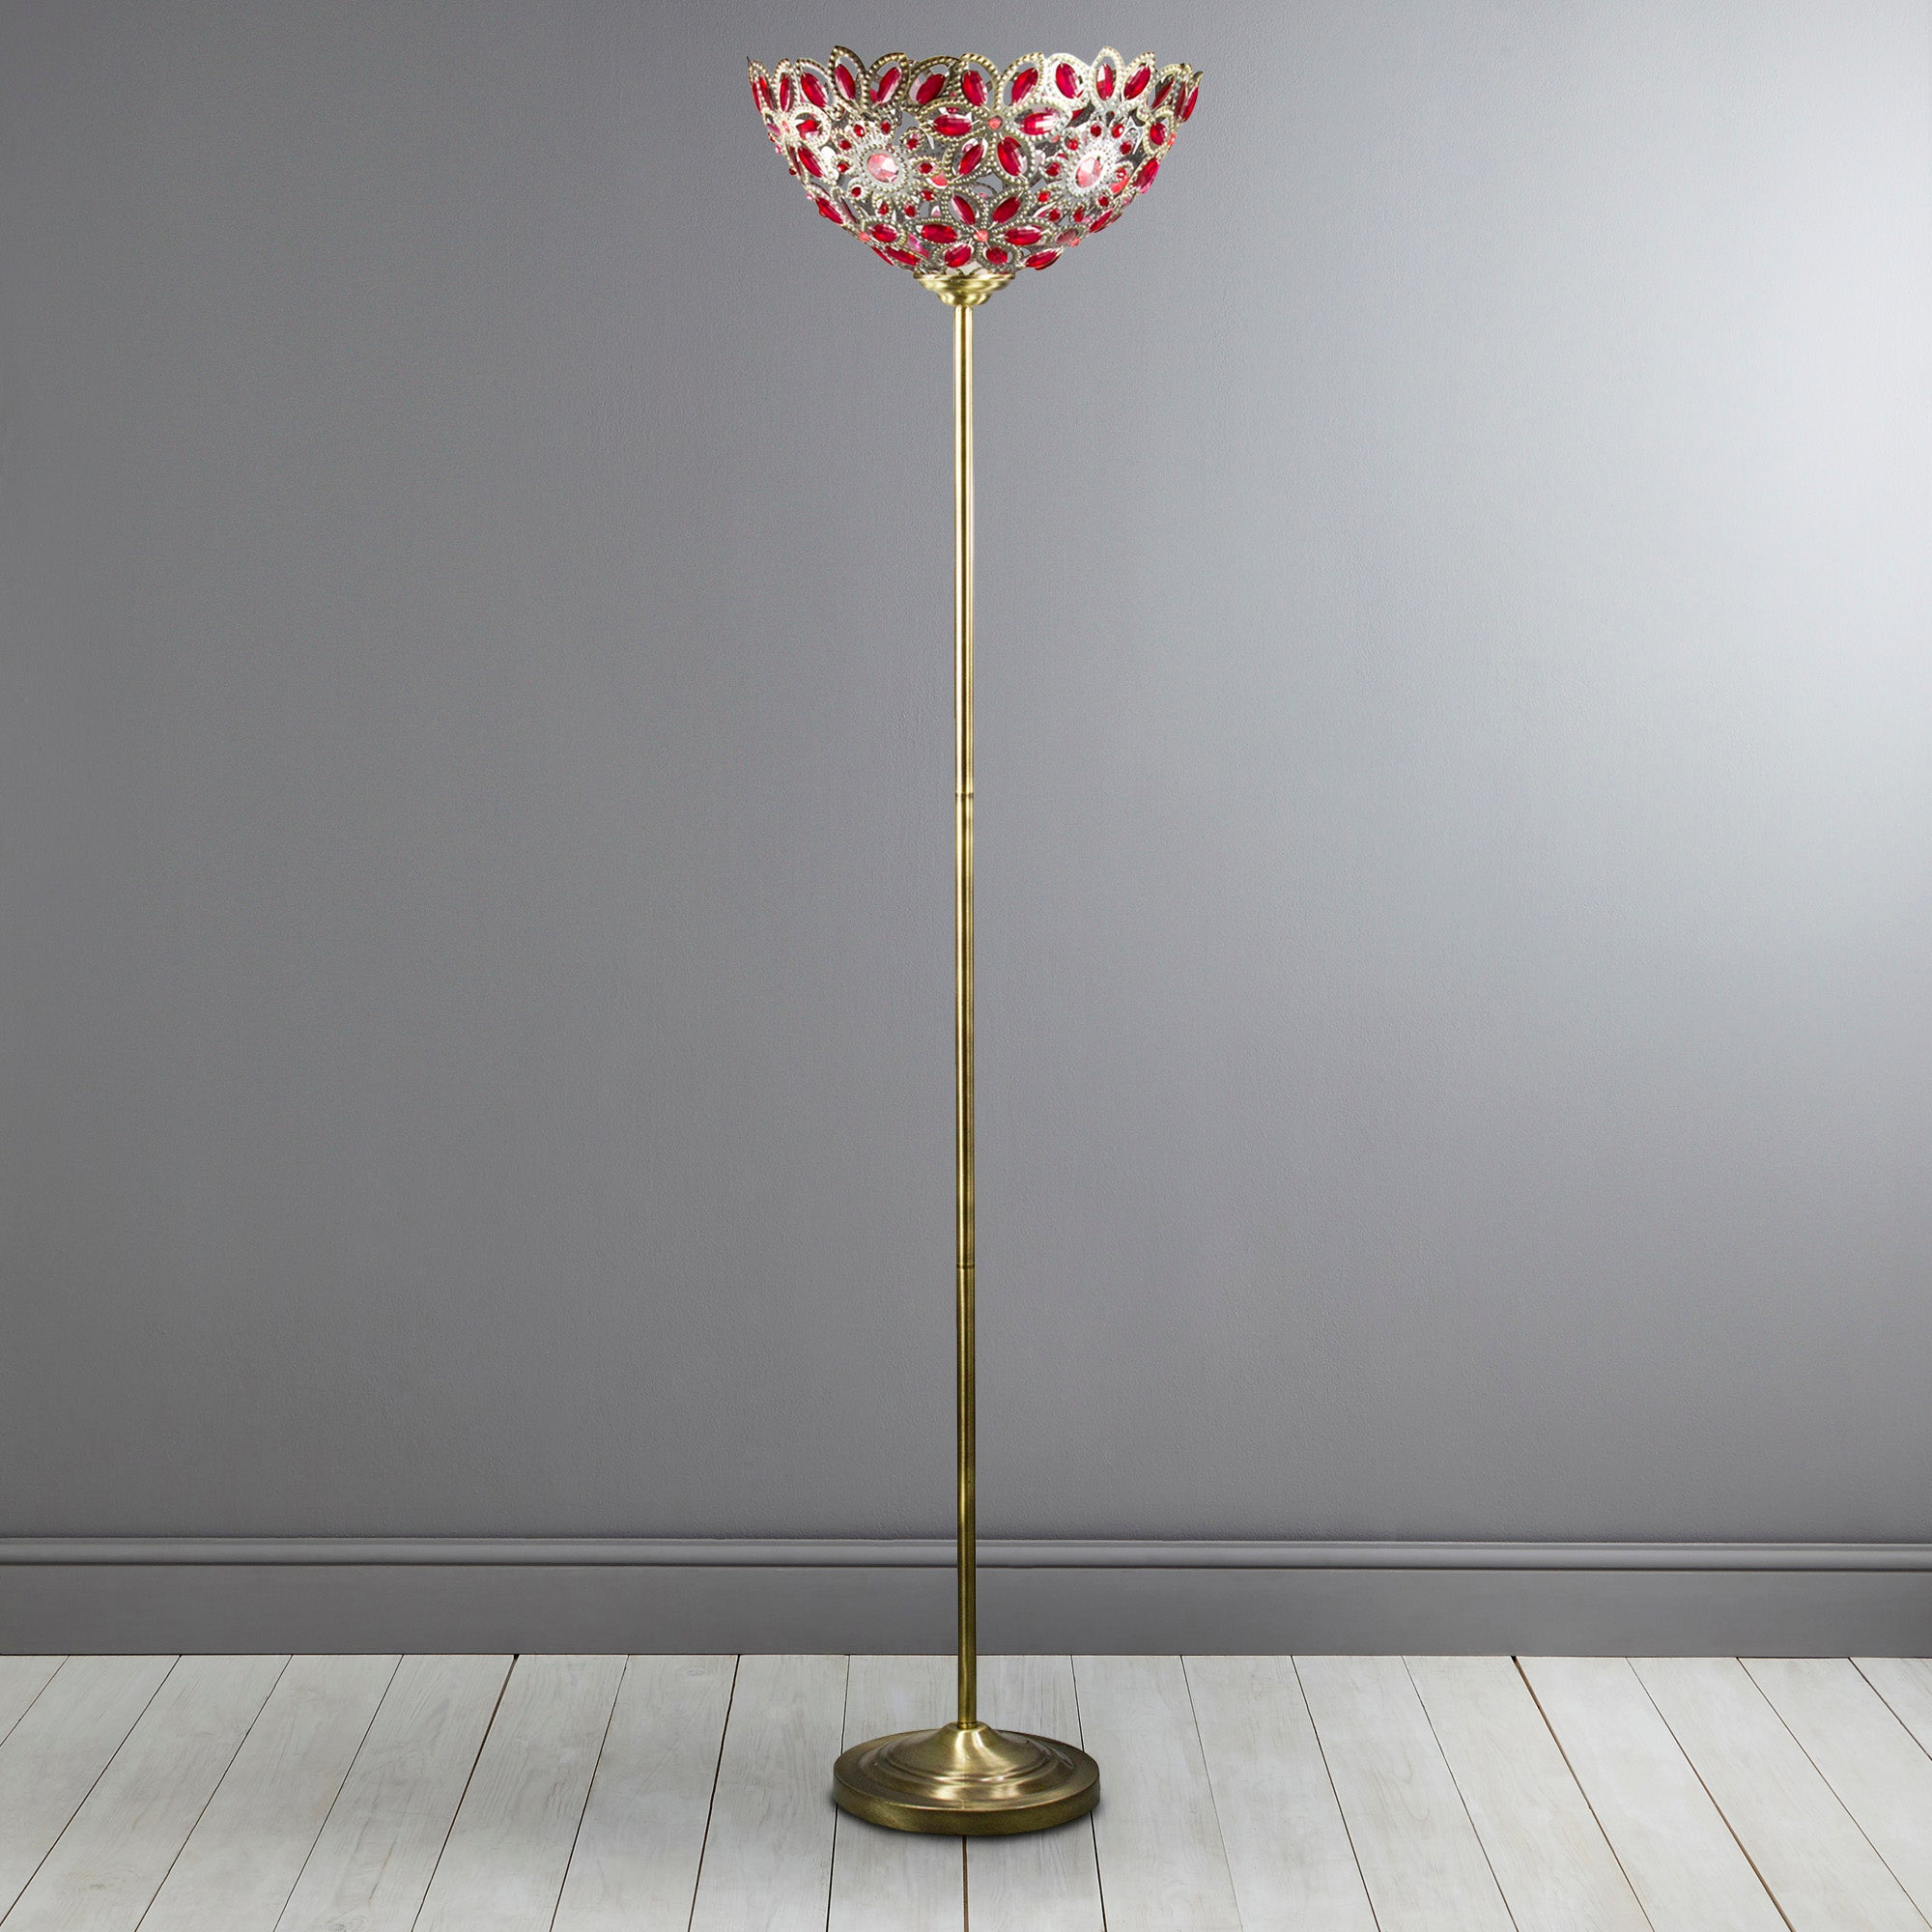 Moroccan Red Uplighter Floor Lamp